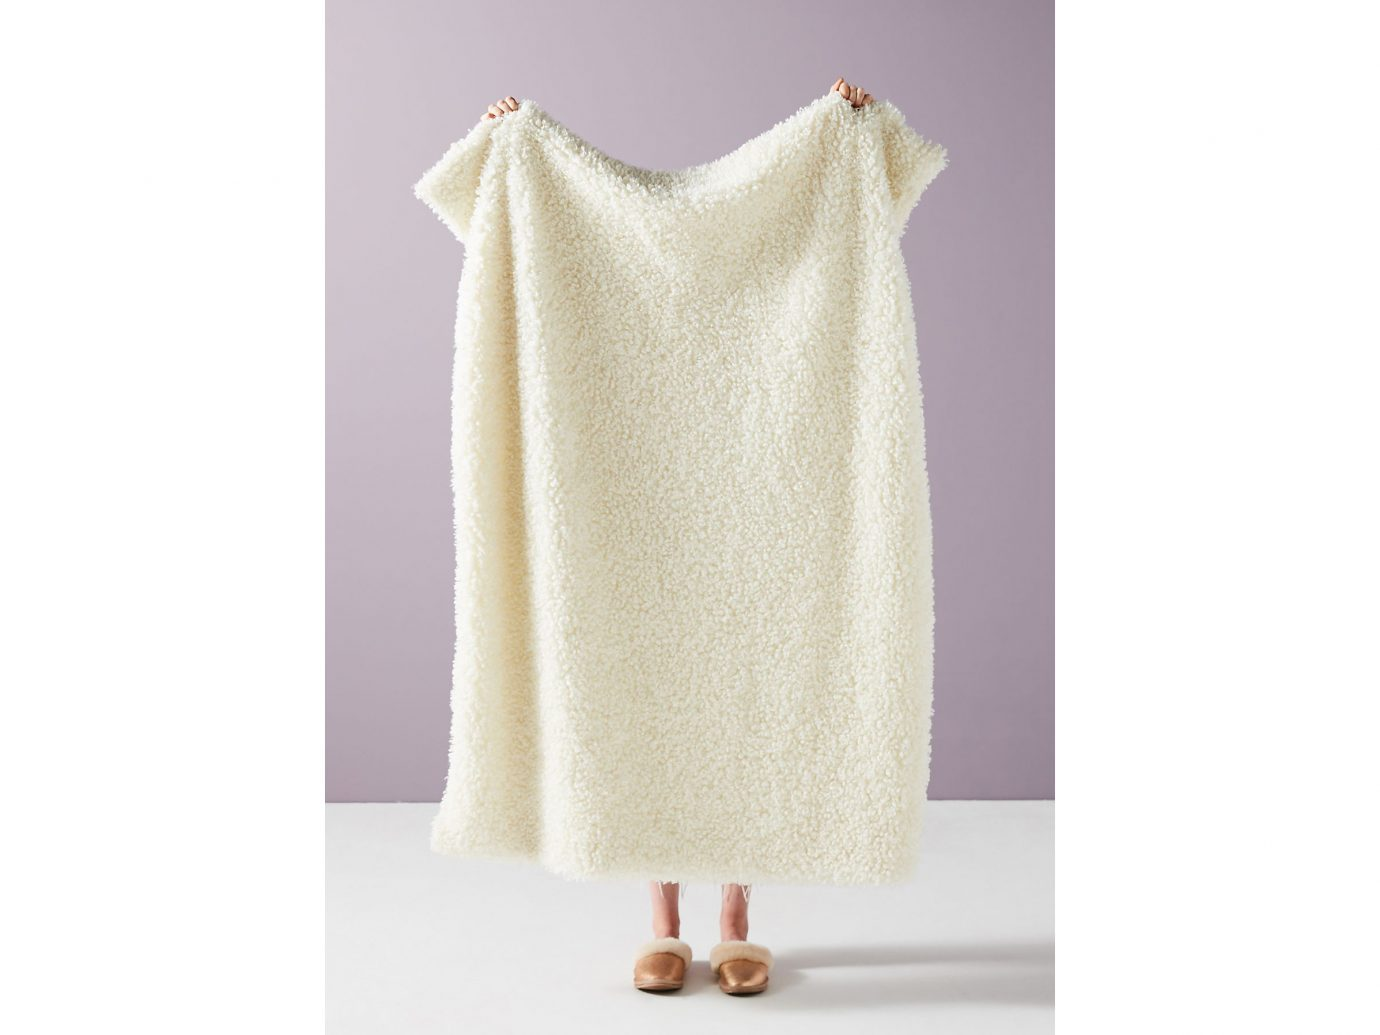 Blanket: Anthropologie Fuzzy Faux Fur Throw